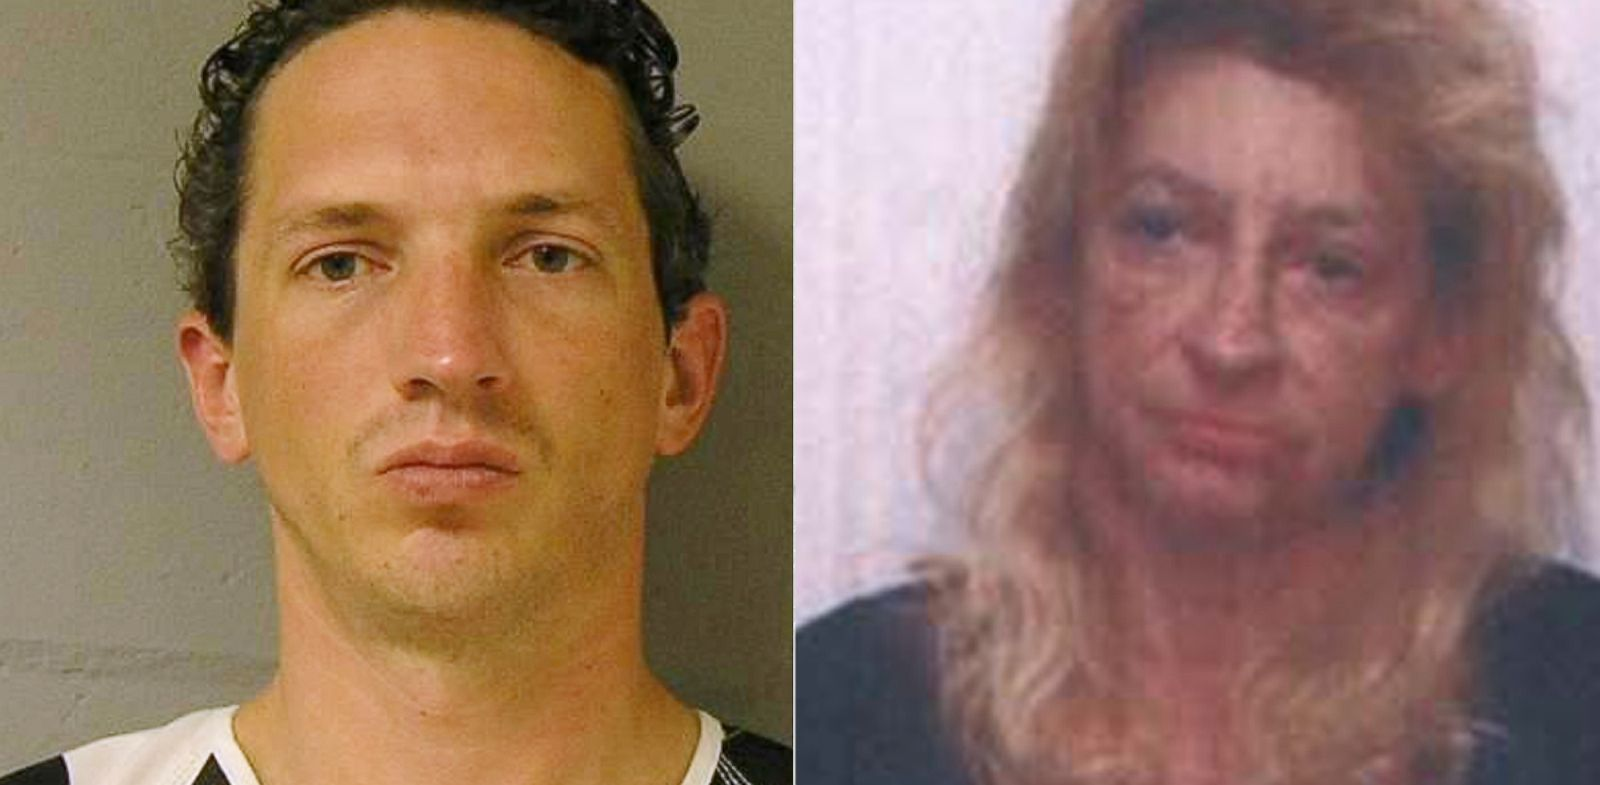 PHOTO: Investigators believe Alaska serial killer Israel Keyes was responsible for killing 11 people and are investigating whether Hackensack, N.J., resident Debra Feldman, who disappeared in 2009, may be one of the victims.